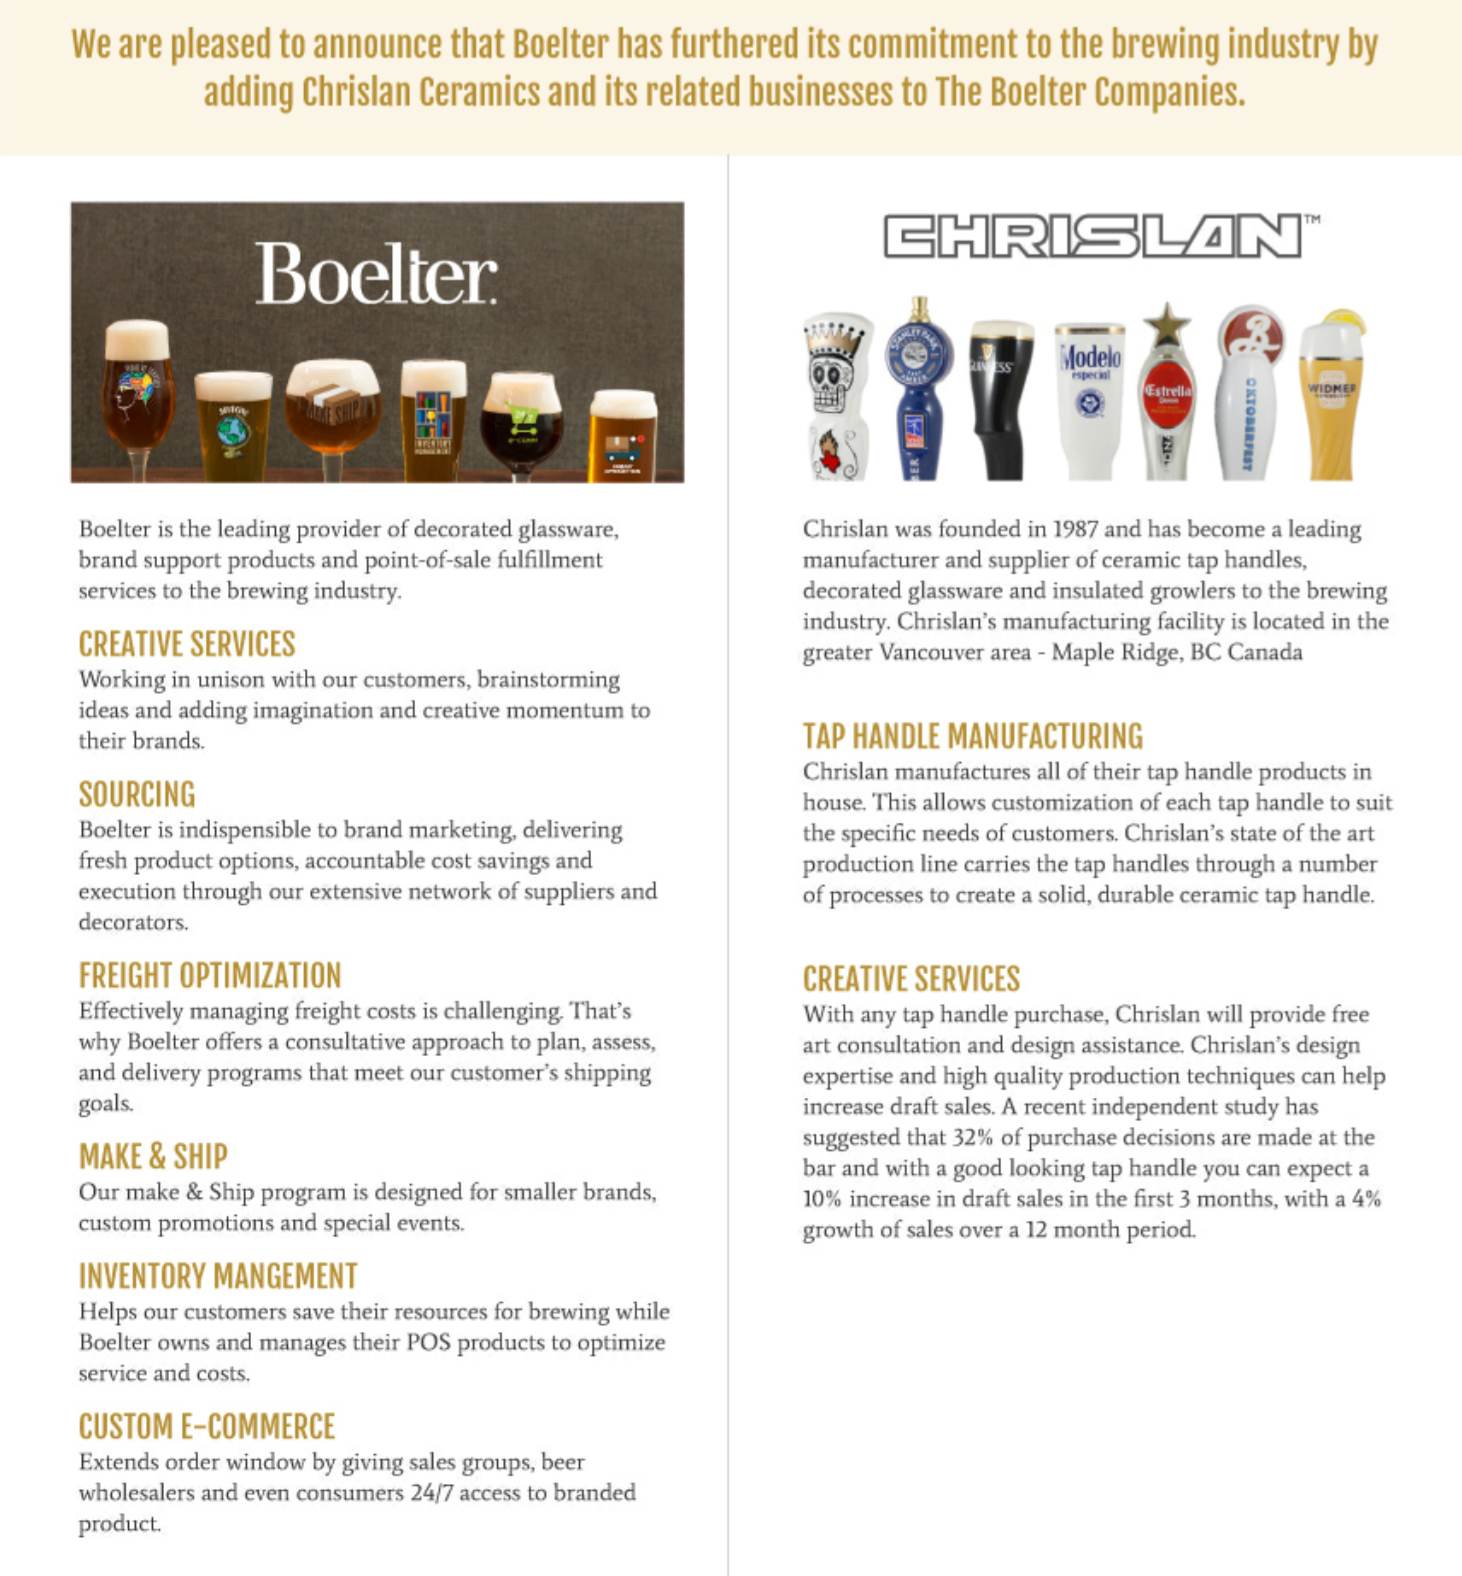 Boelter announces it has furthered its commitment to the brewing industry by adding Chrislan Ceramics.